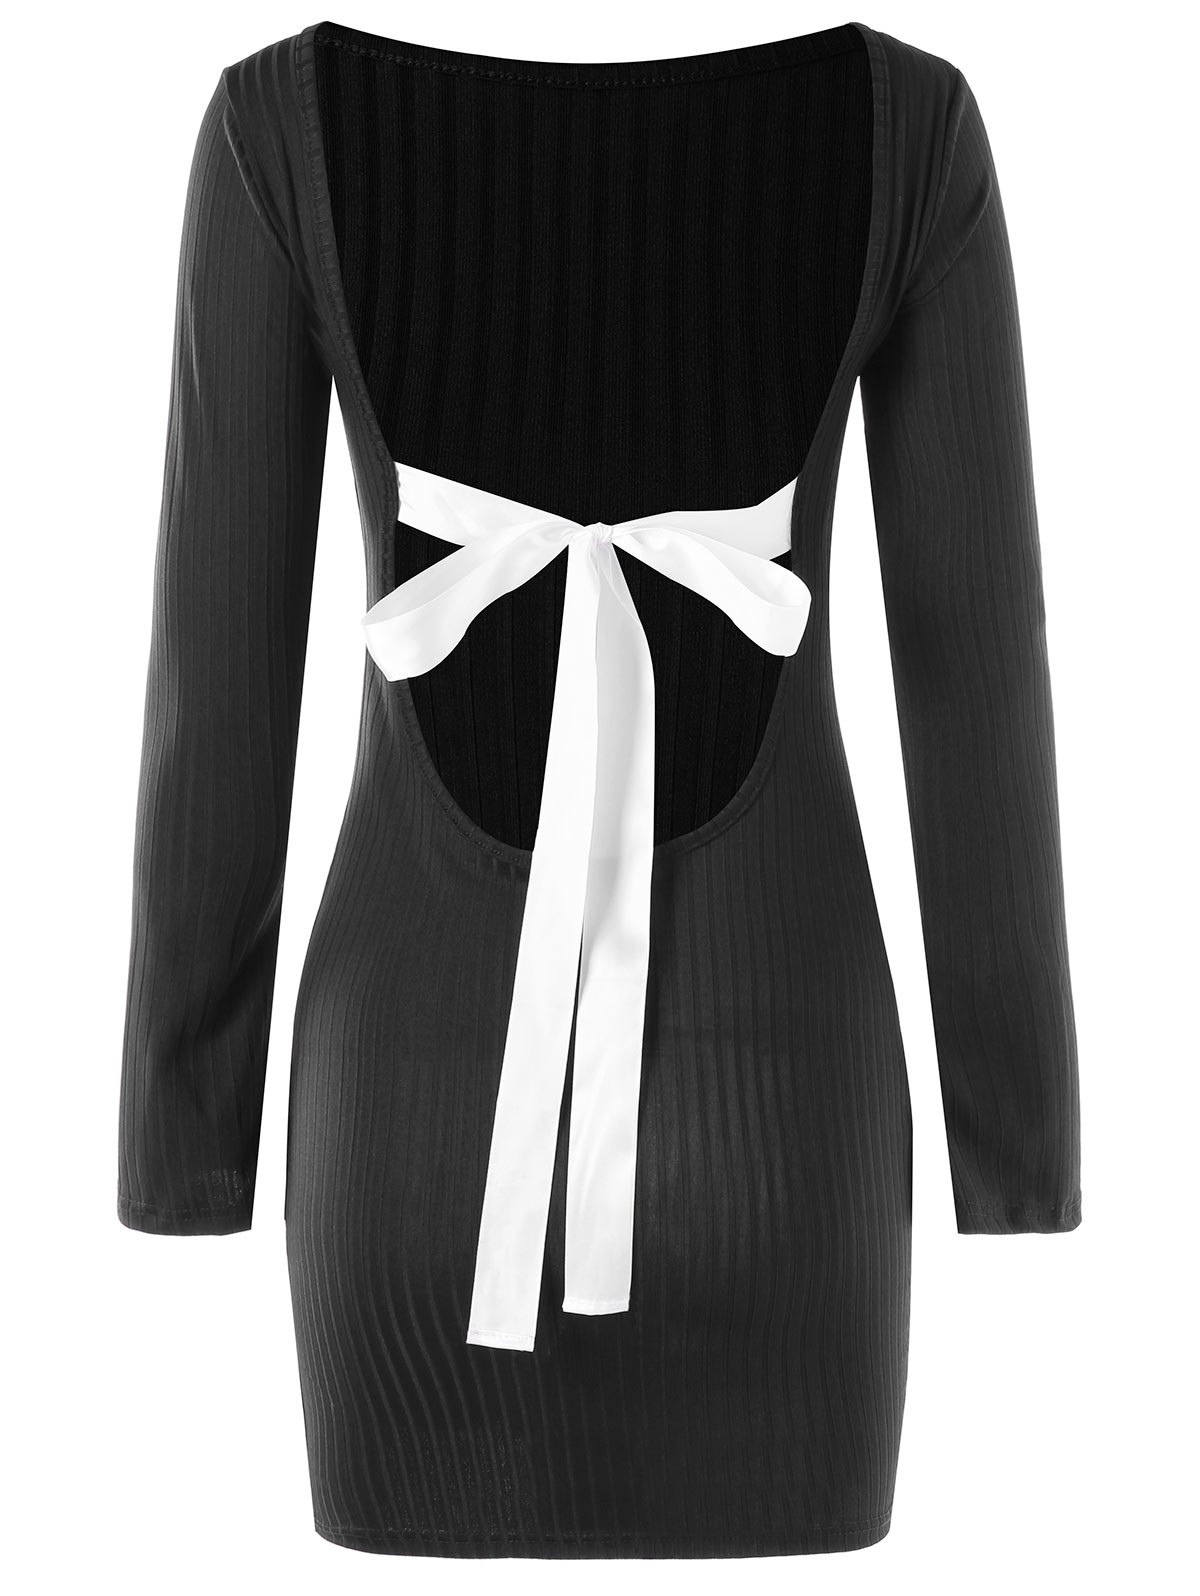 Bowknot Decorated Open Back Dress - BLACK M